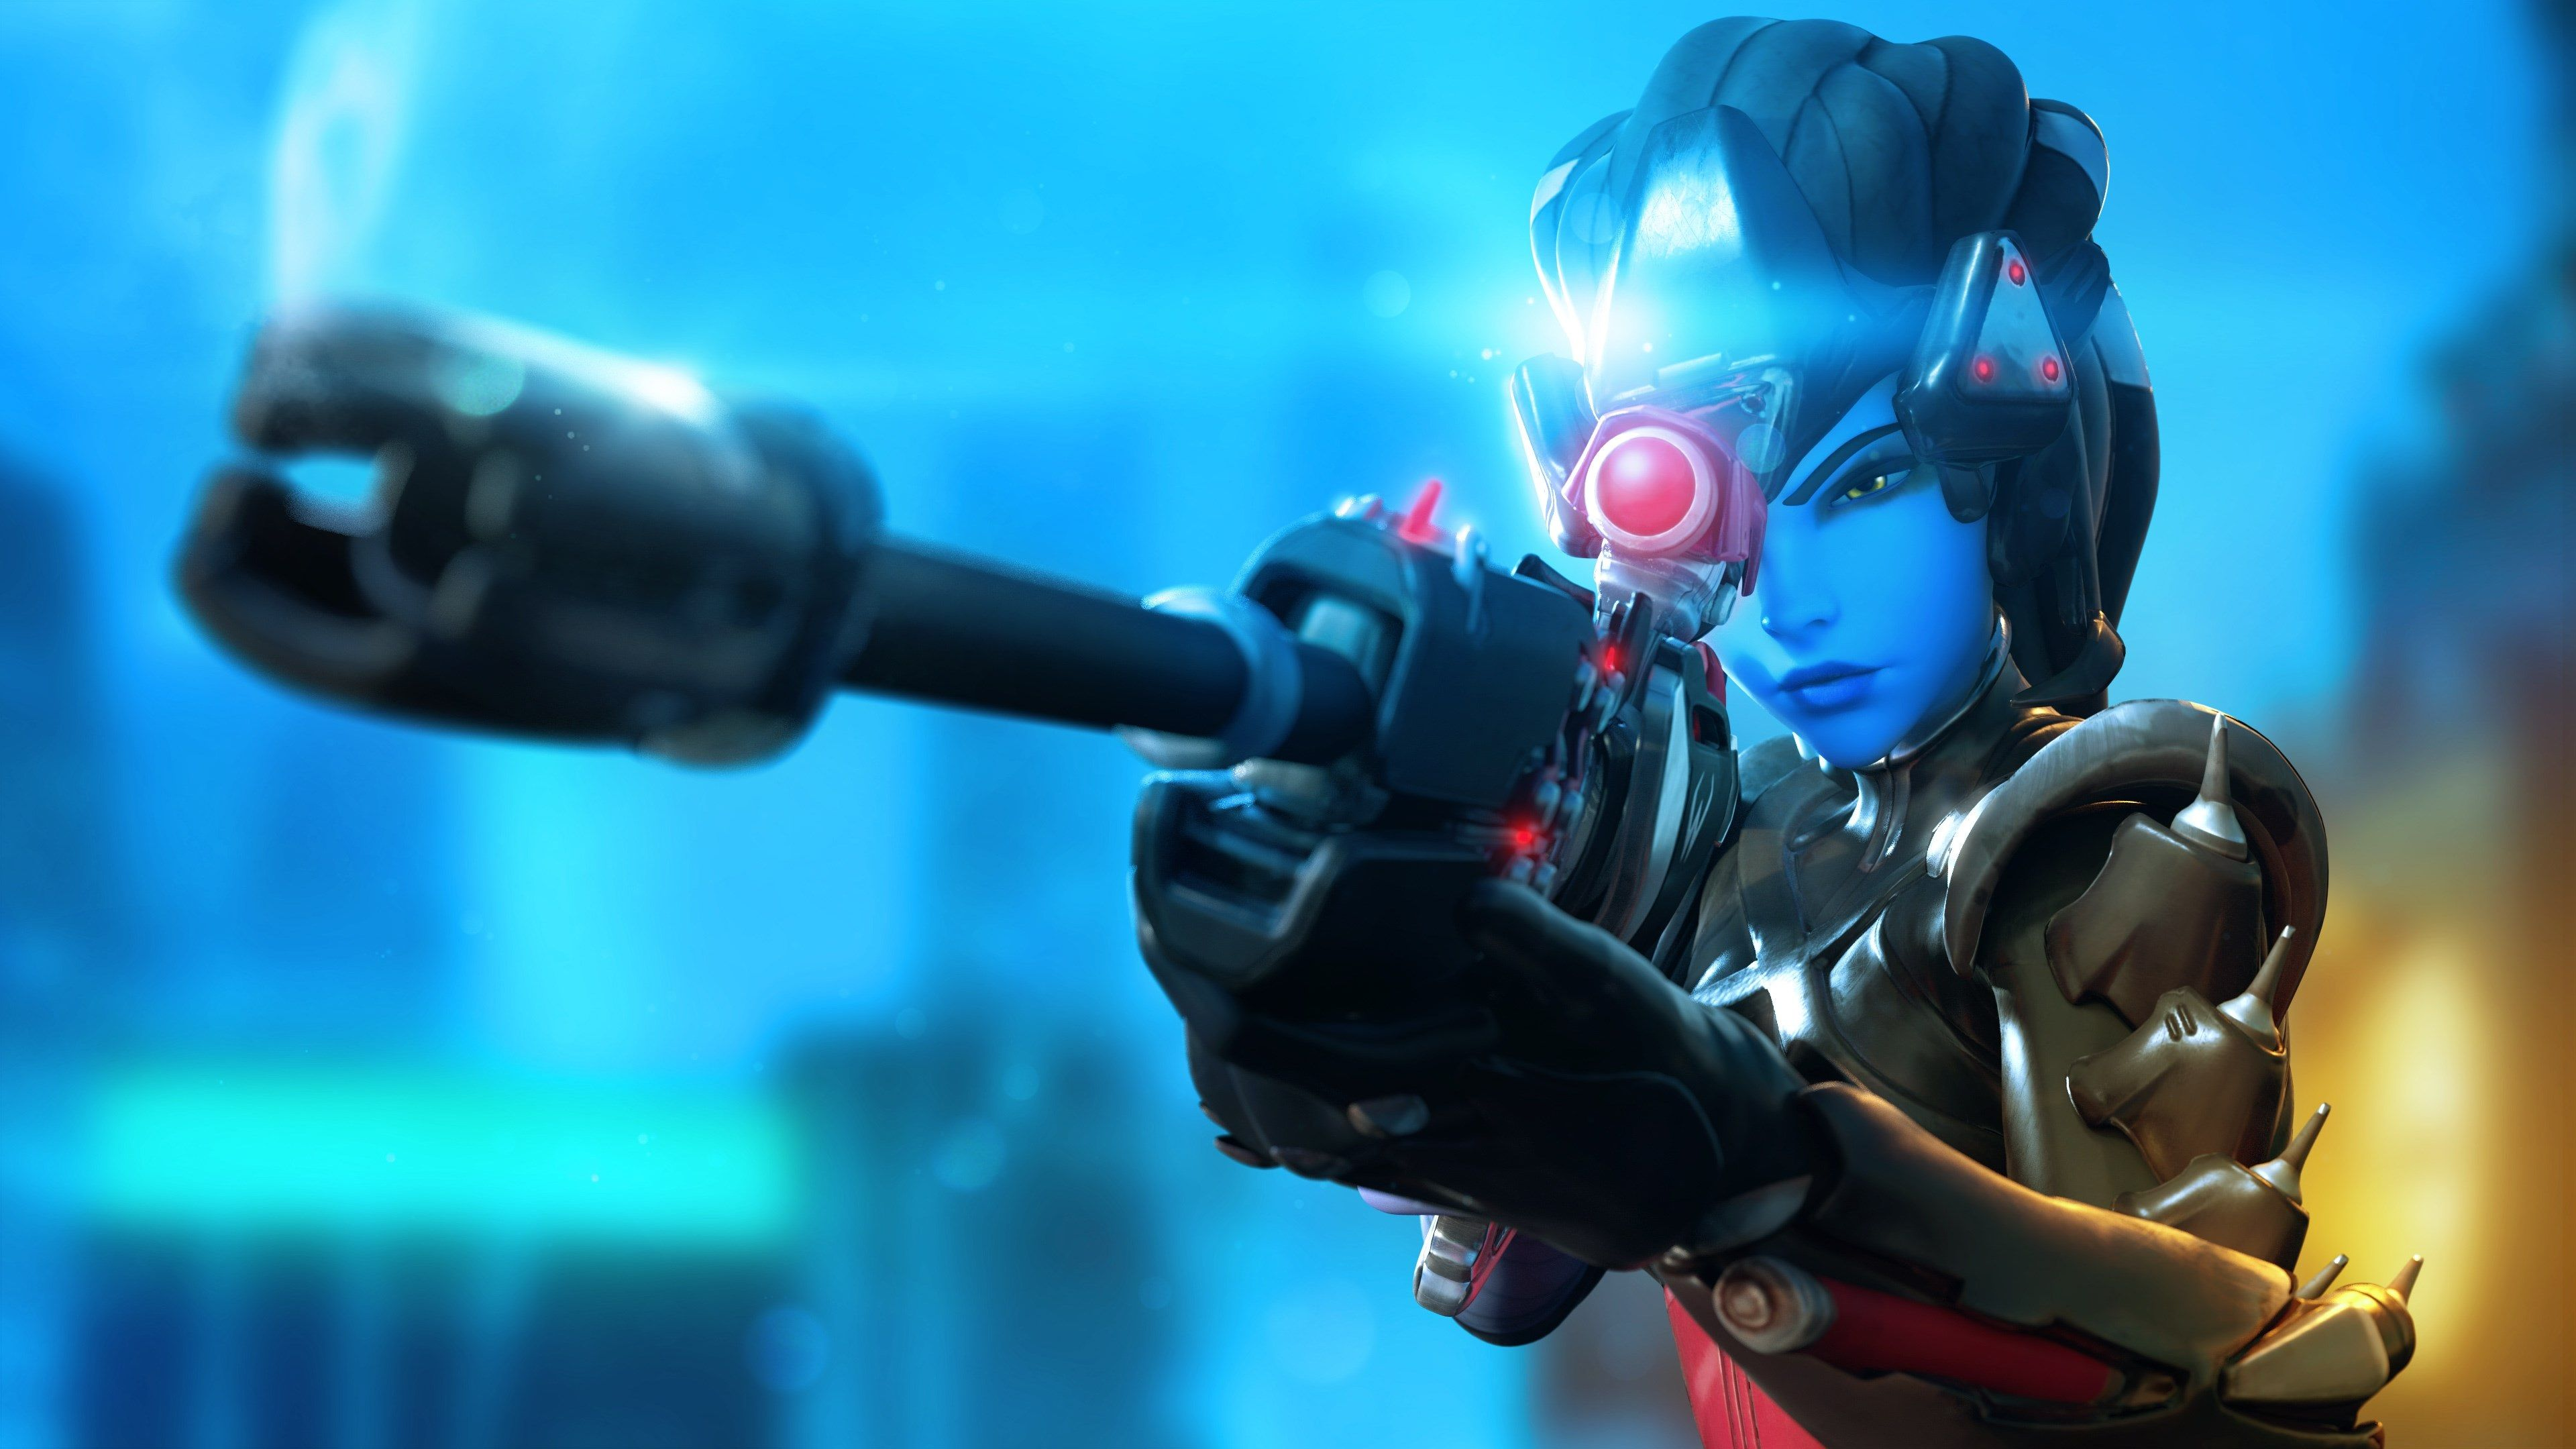 3840x2160 Overwatch 4k Ultra High Definition Wallpaper En